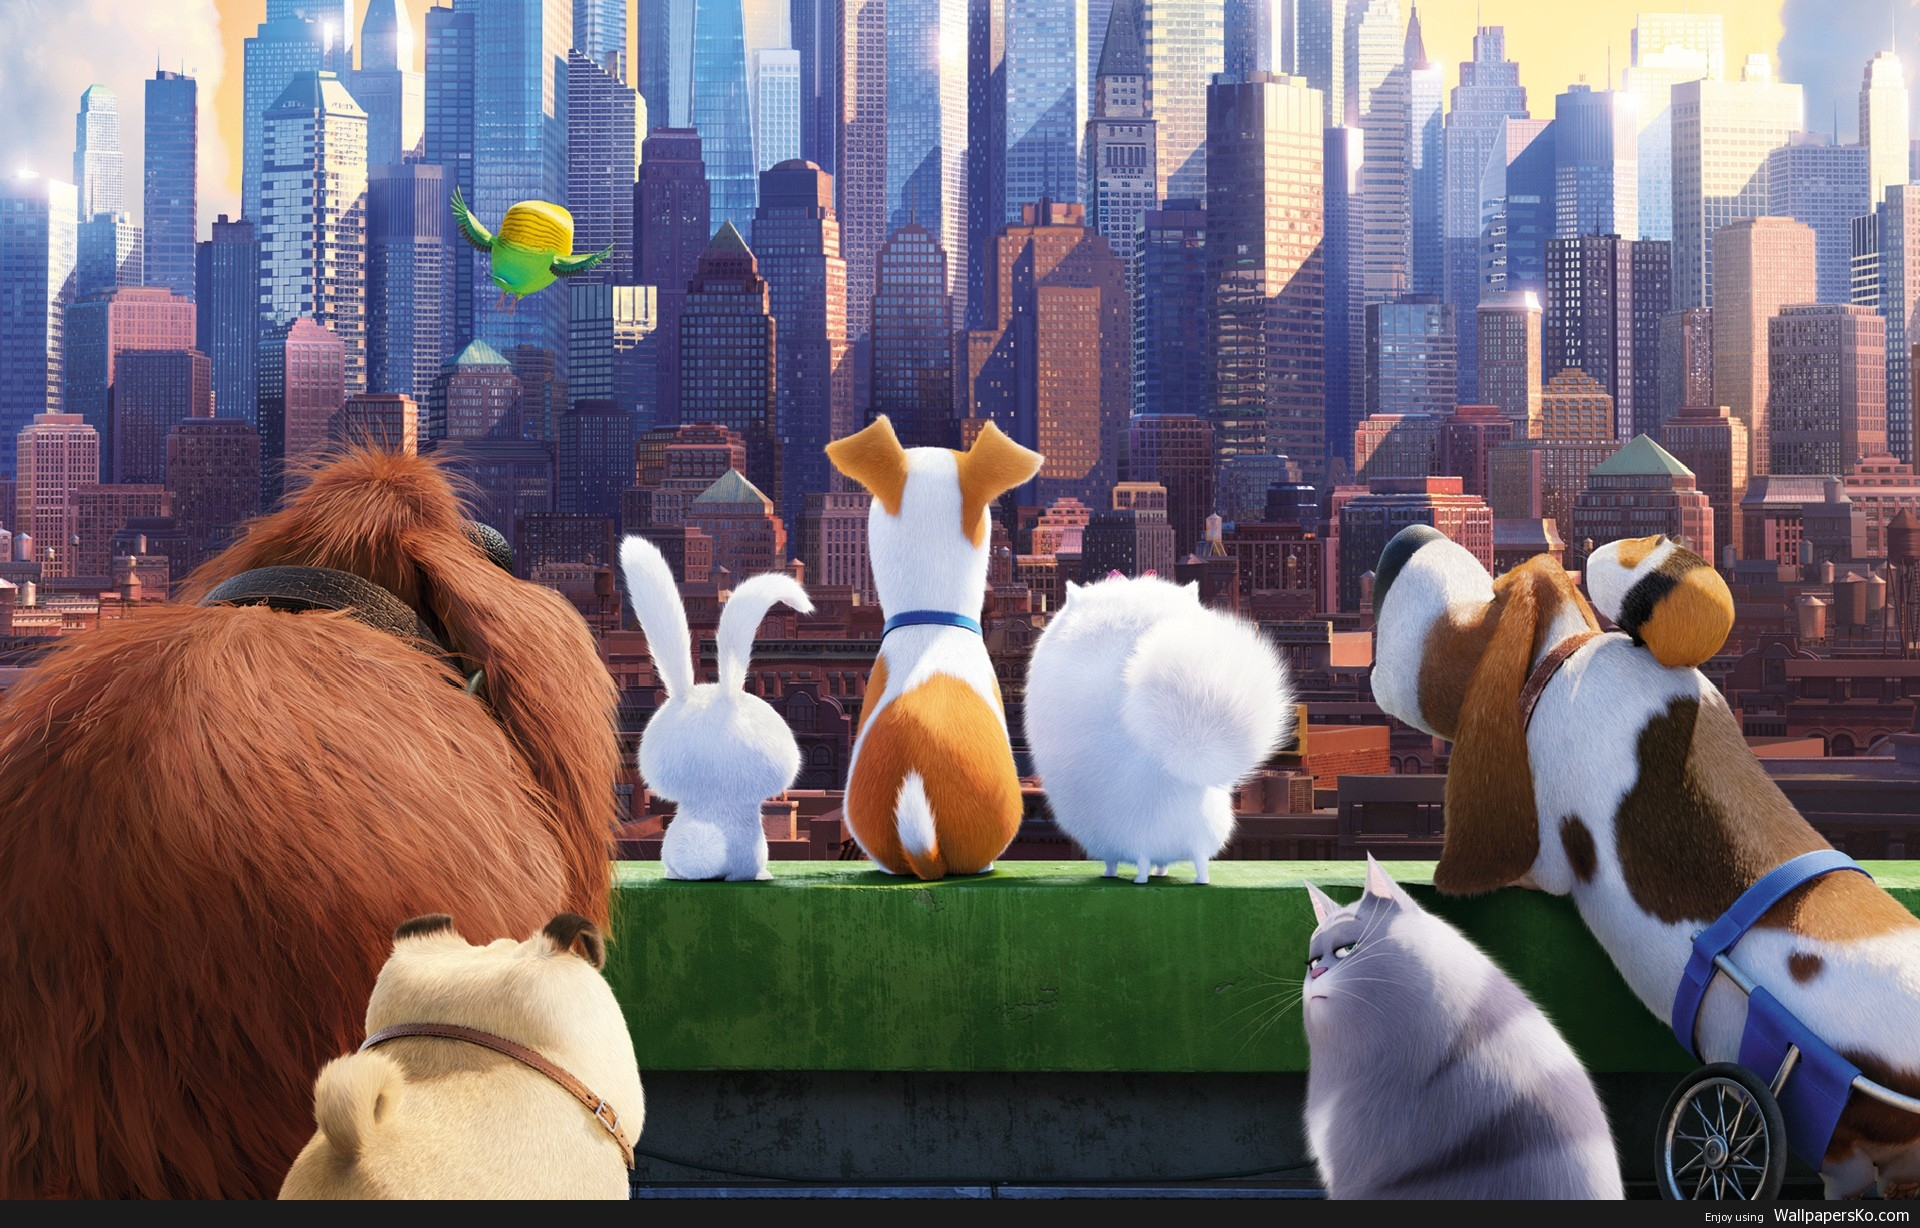 pets movie wallpaper